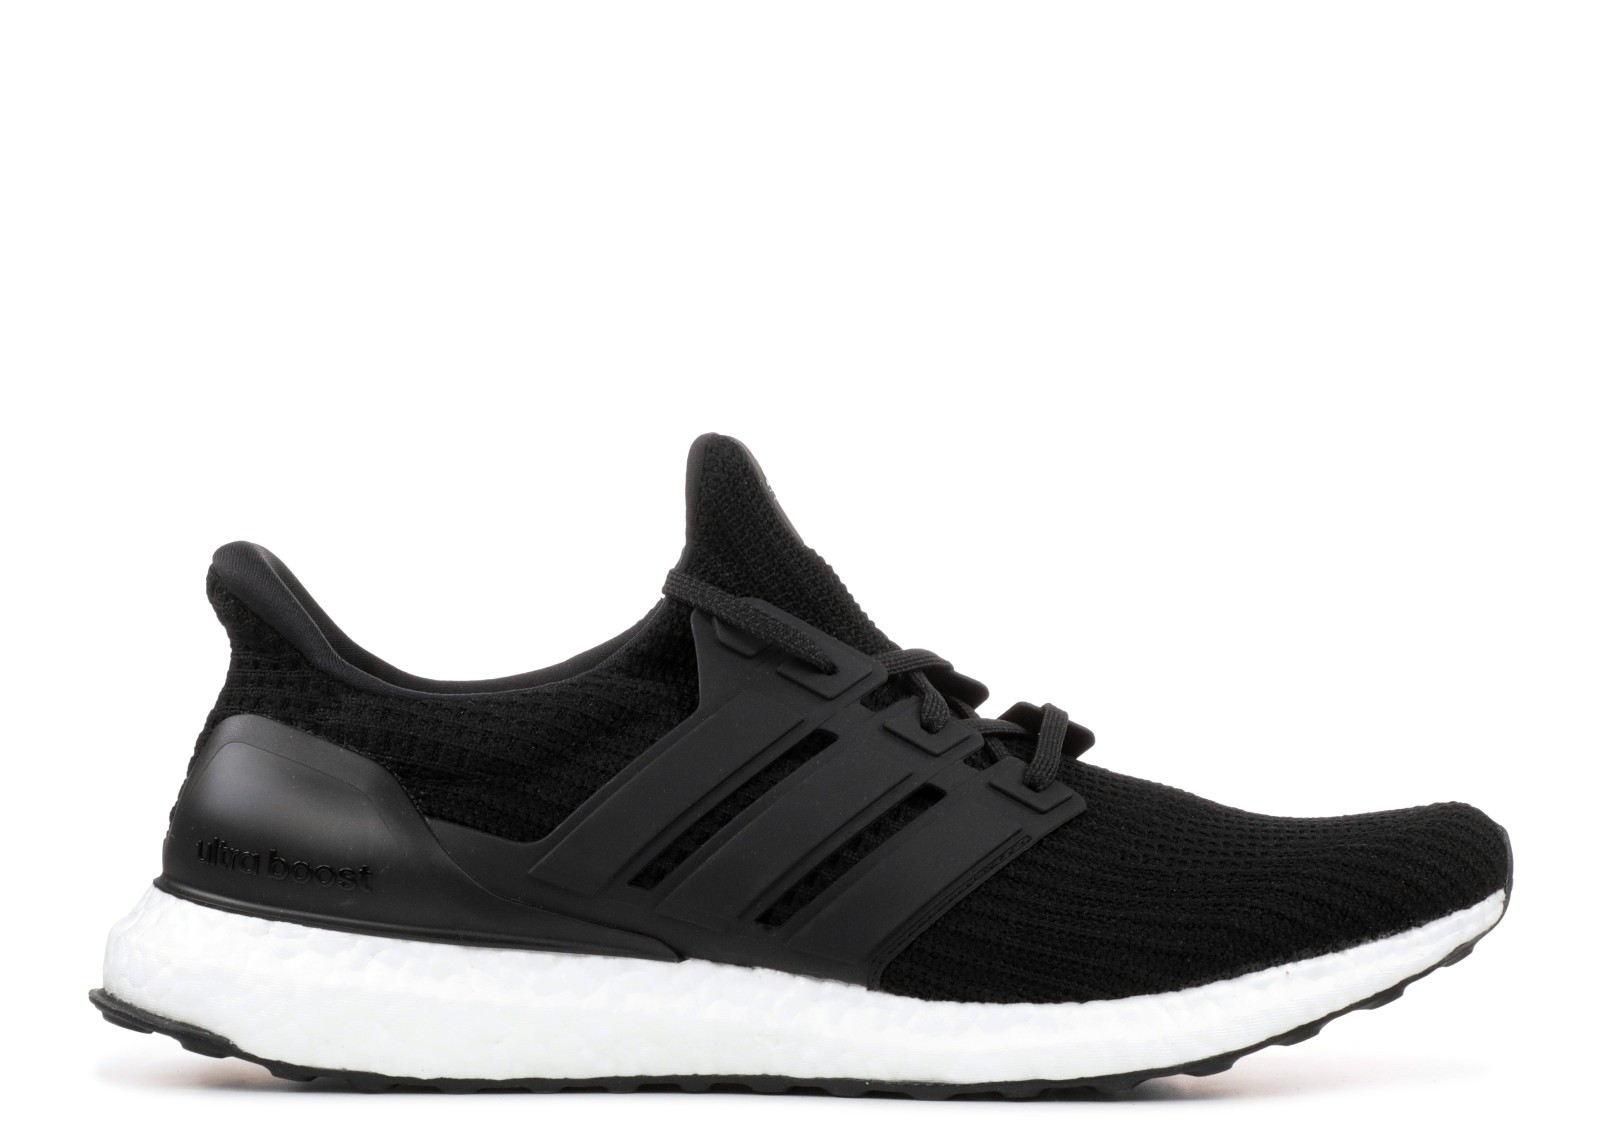 adidas Ultra Boost 4.0 Skor BB6166